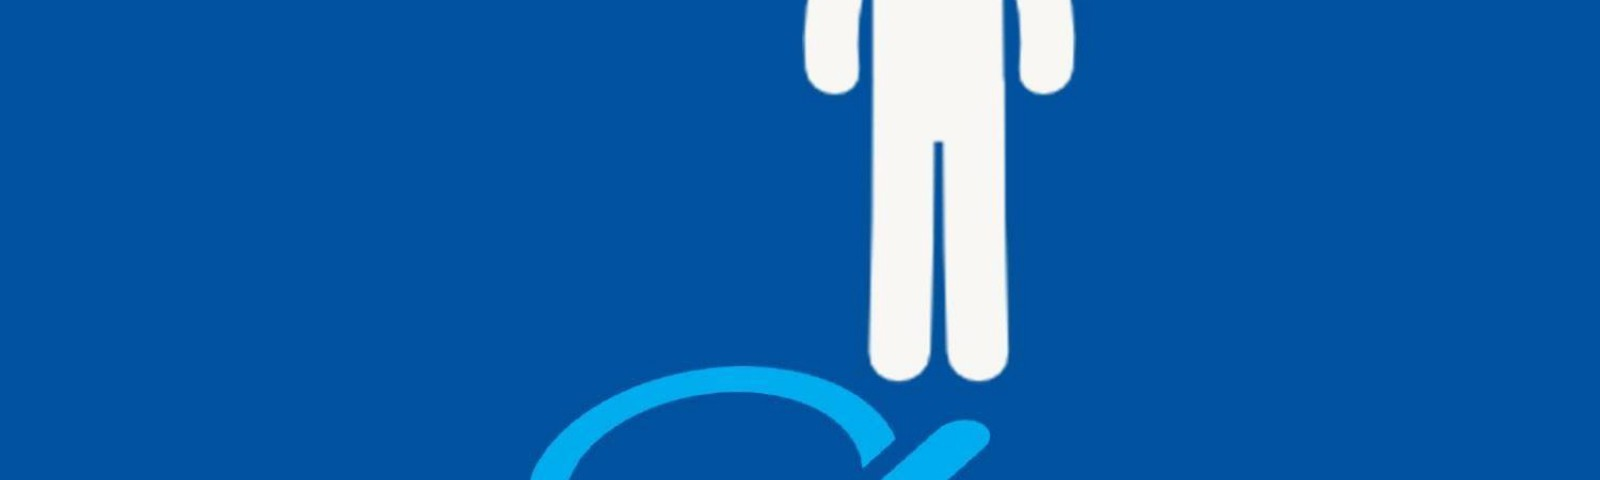 """""""Not every disability is visible"""". white stick figure with pale blue wheelchair symbol shadow; blue background."""